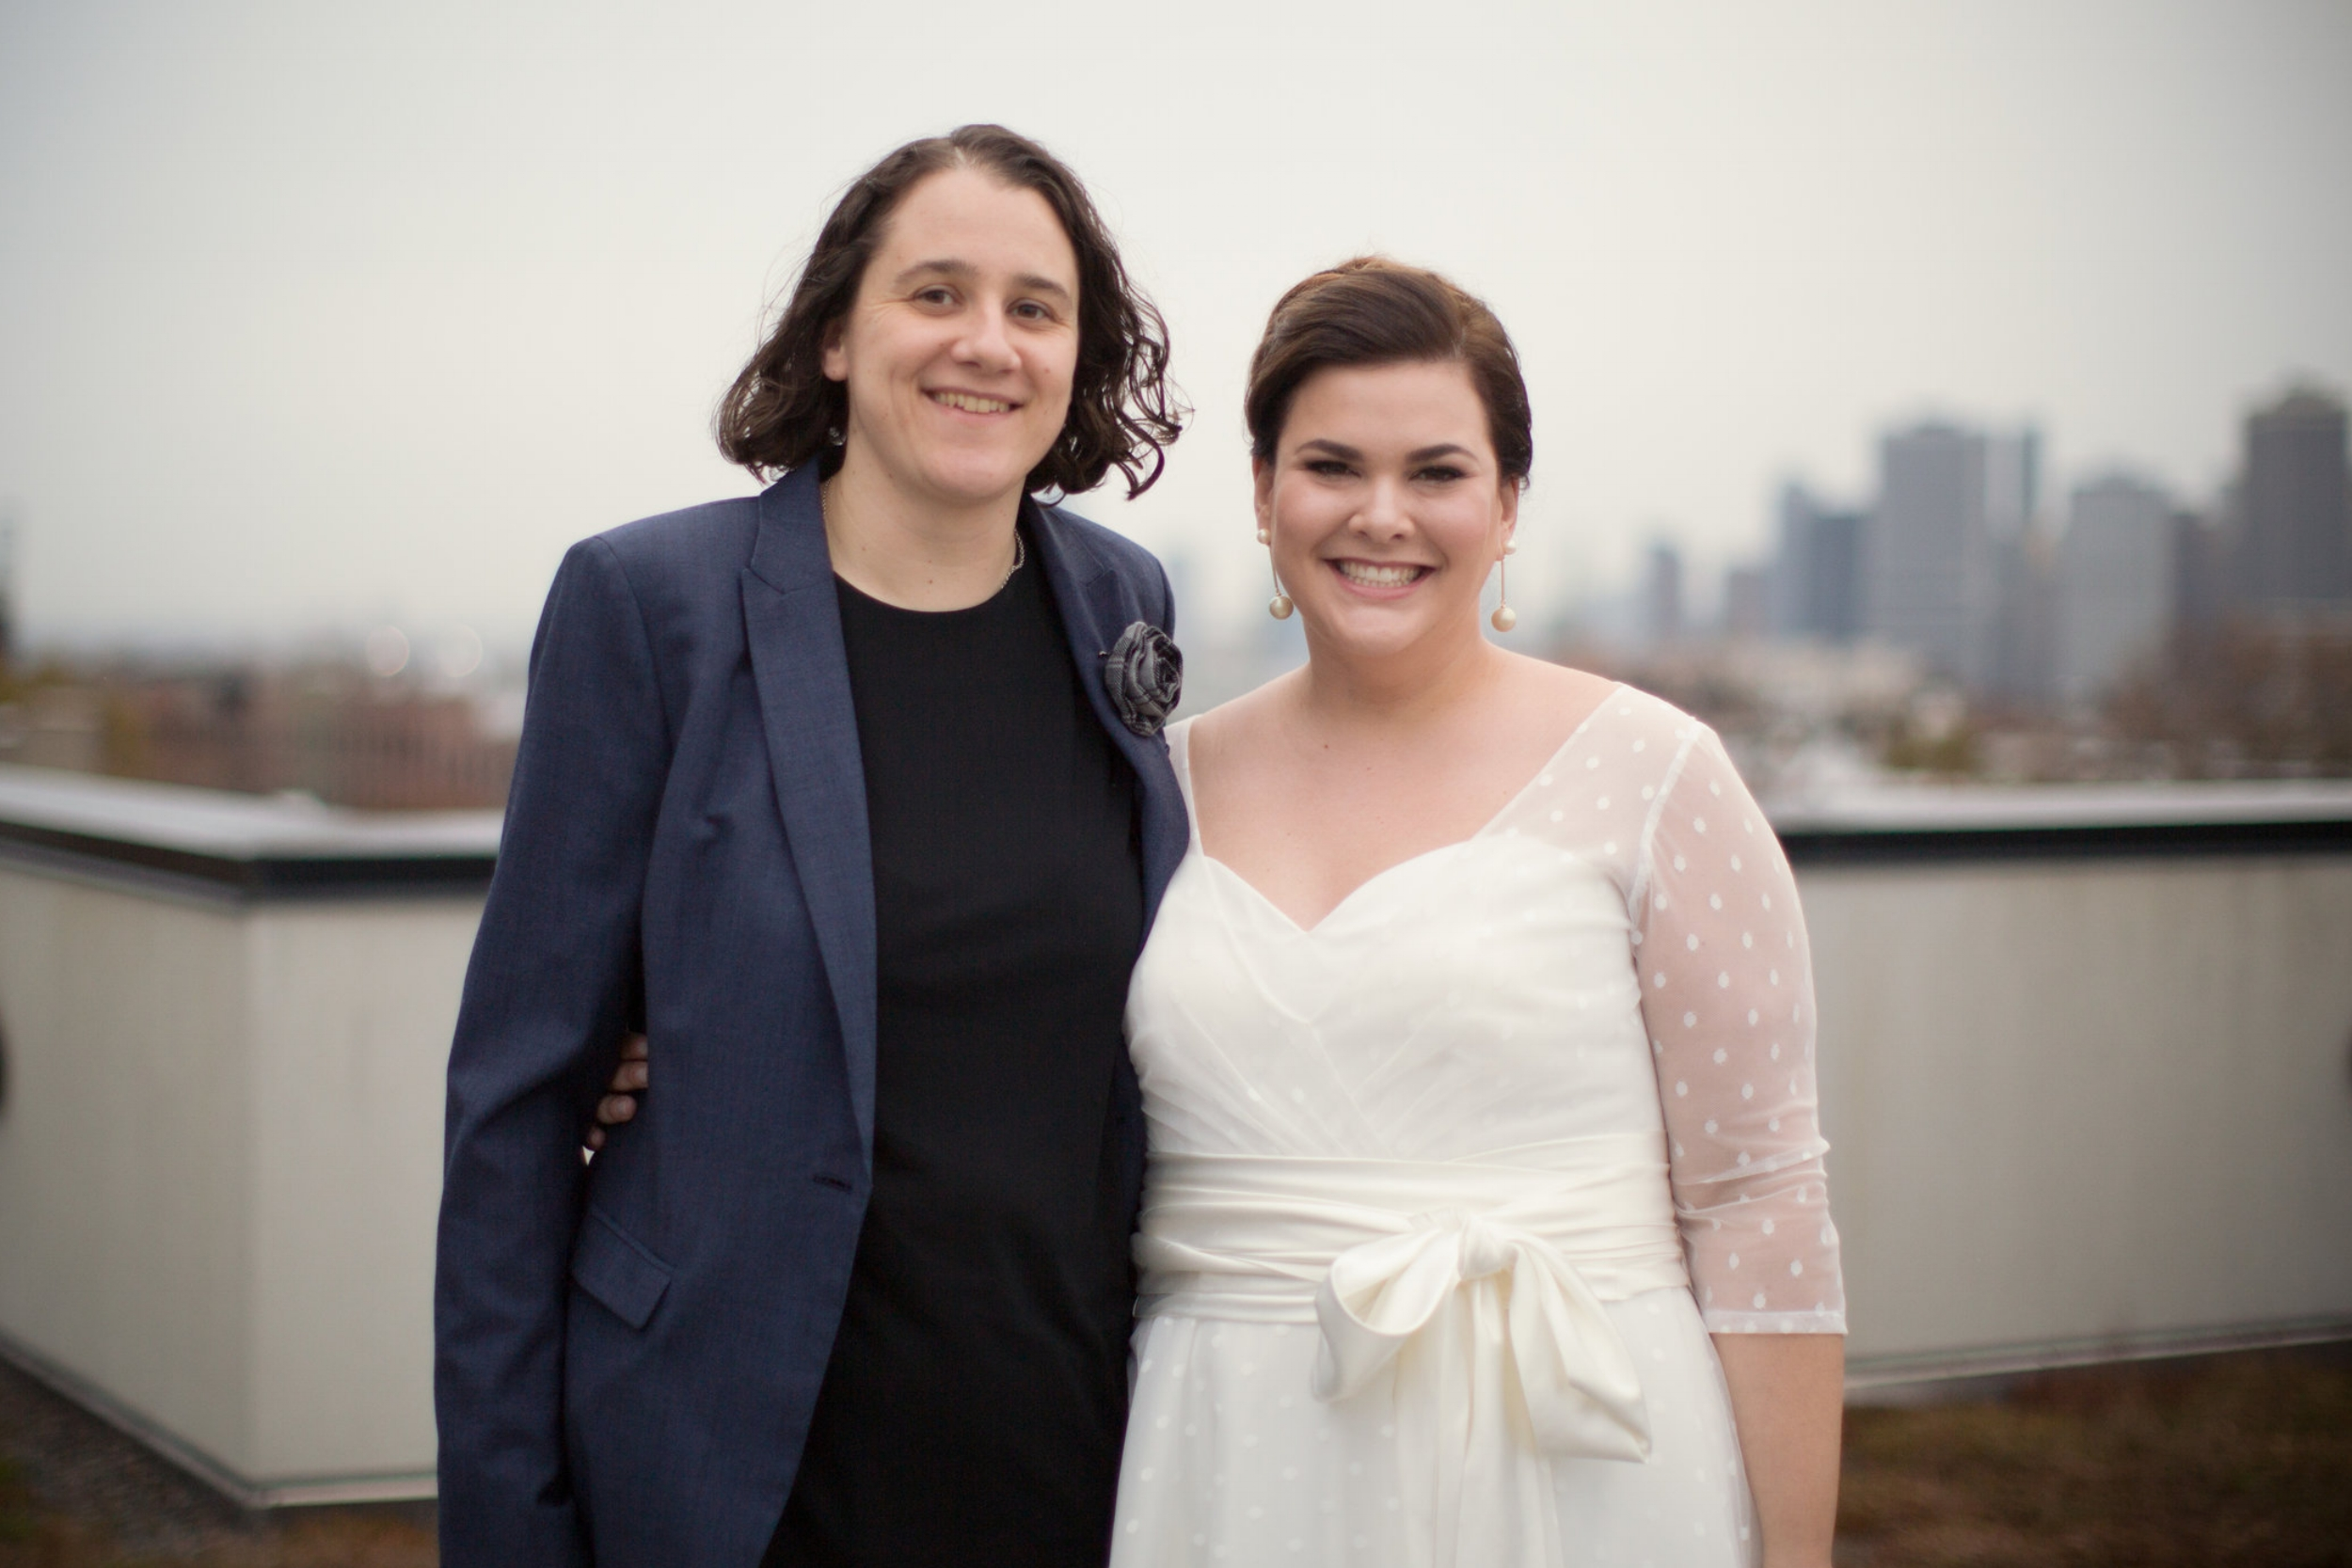 Photography by Weddings by Two